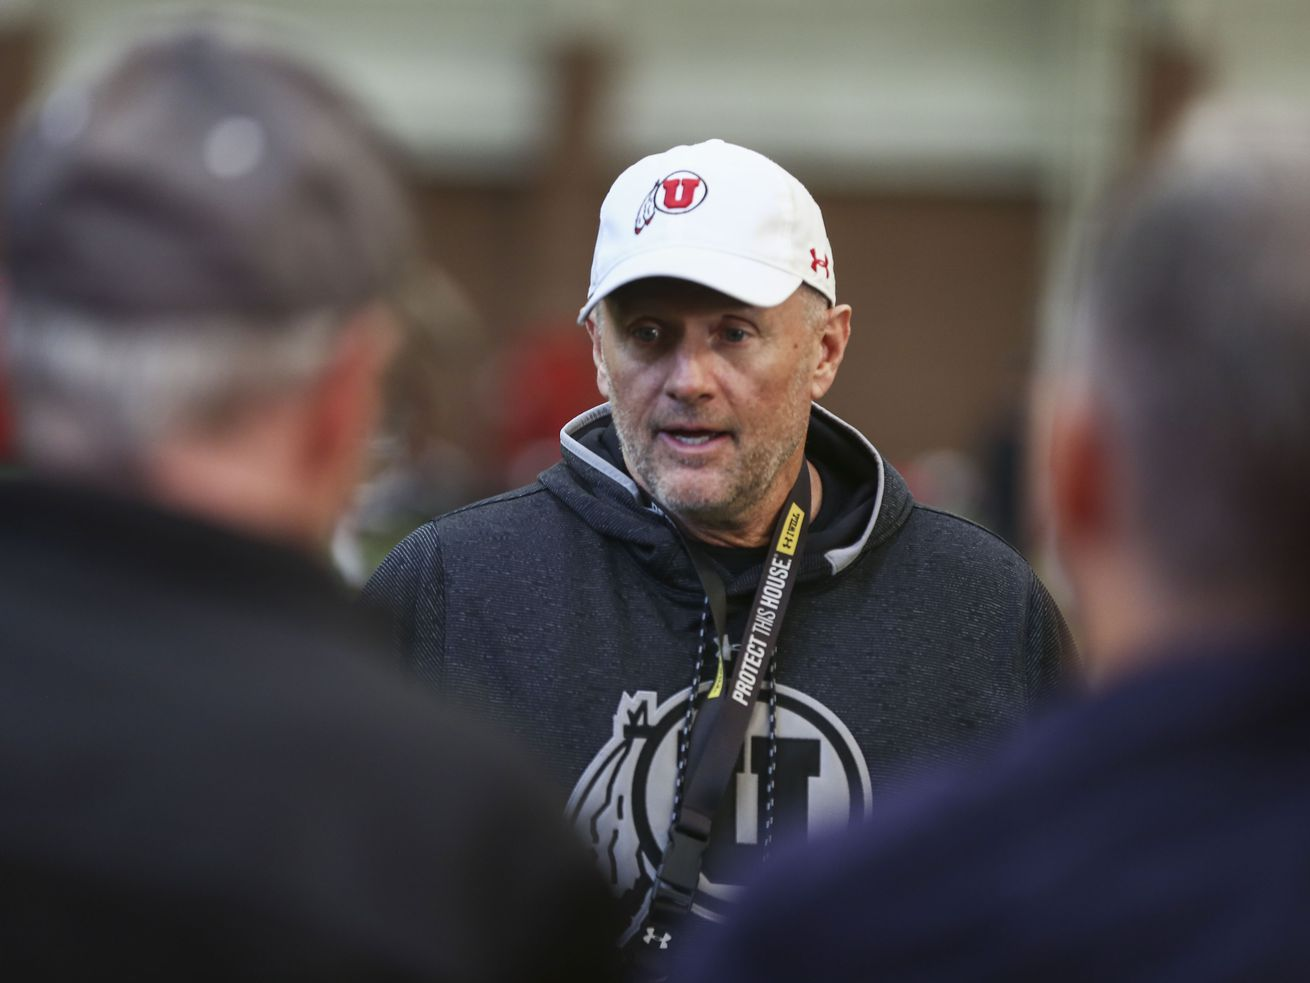 Utah Utes coach Kyle Whittingham speaks with members of the media after their spring training at the Spence and Cleone Eccles Football Center in Salt Lake City on Monday, March 4, 2019.